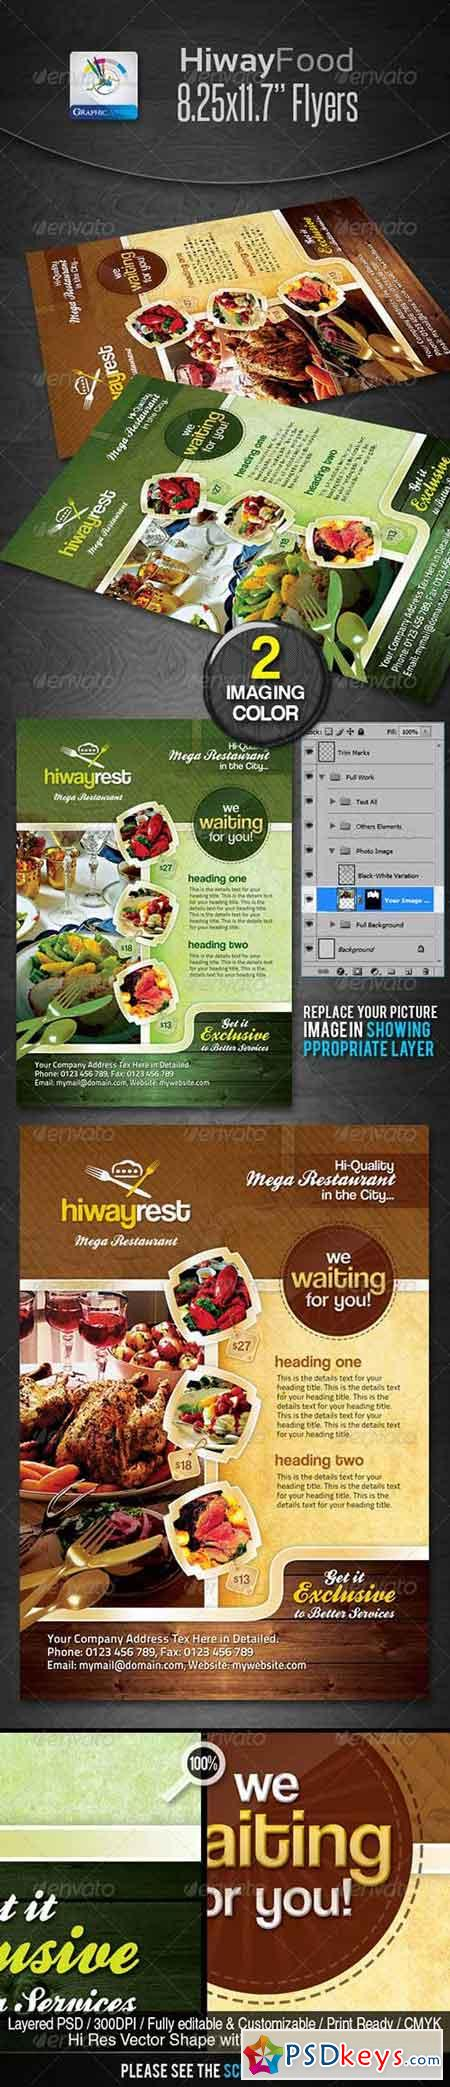 Hiway Modern Foods Flyers 2335365